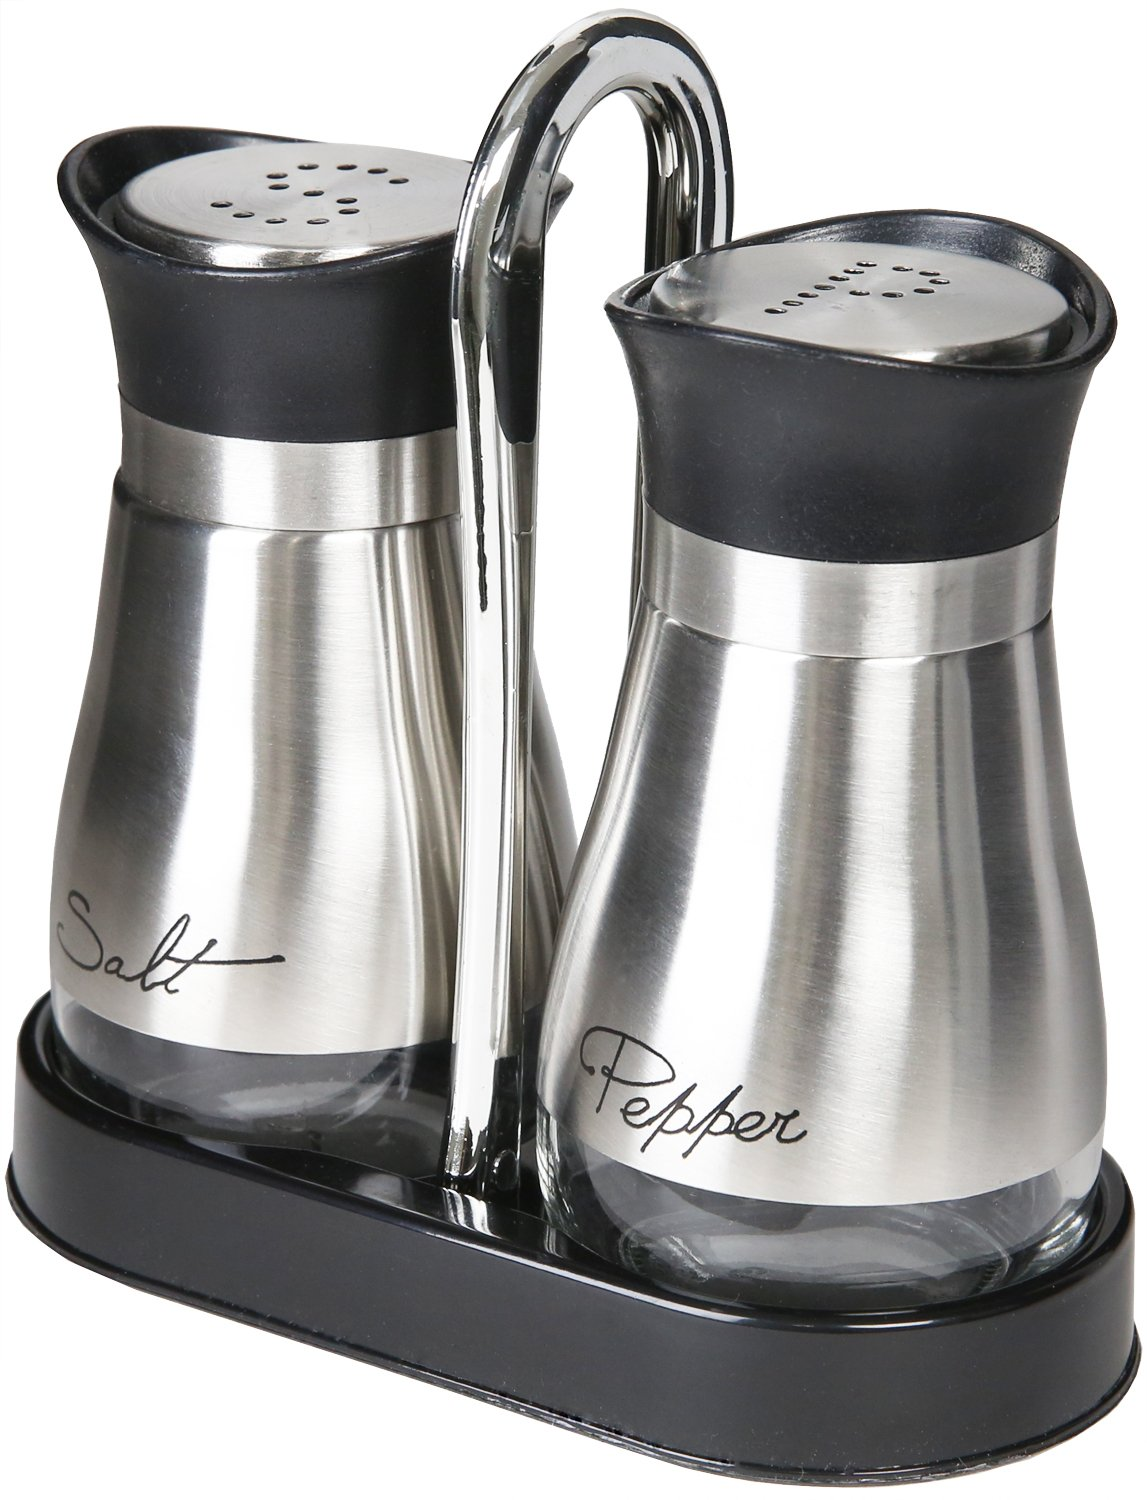 amazoncom salt and pepper shakers set  high grade stainless  - amazoncom salt and pepper shakers set  high grade stainless steel withglass bottom and ' stand   x  x   oz kitchen  dining